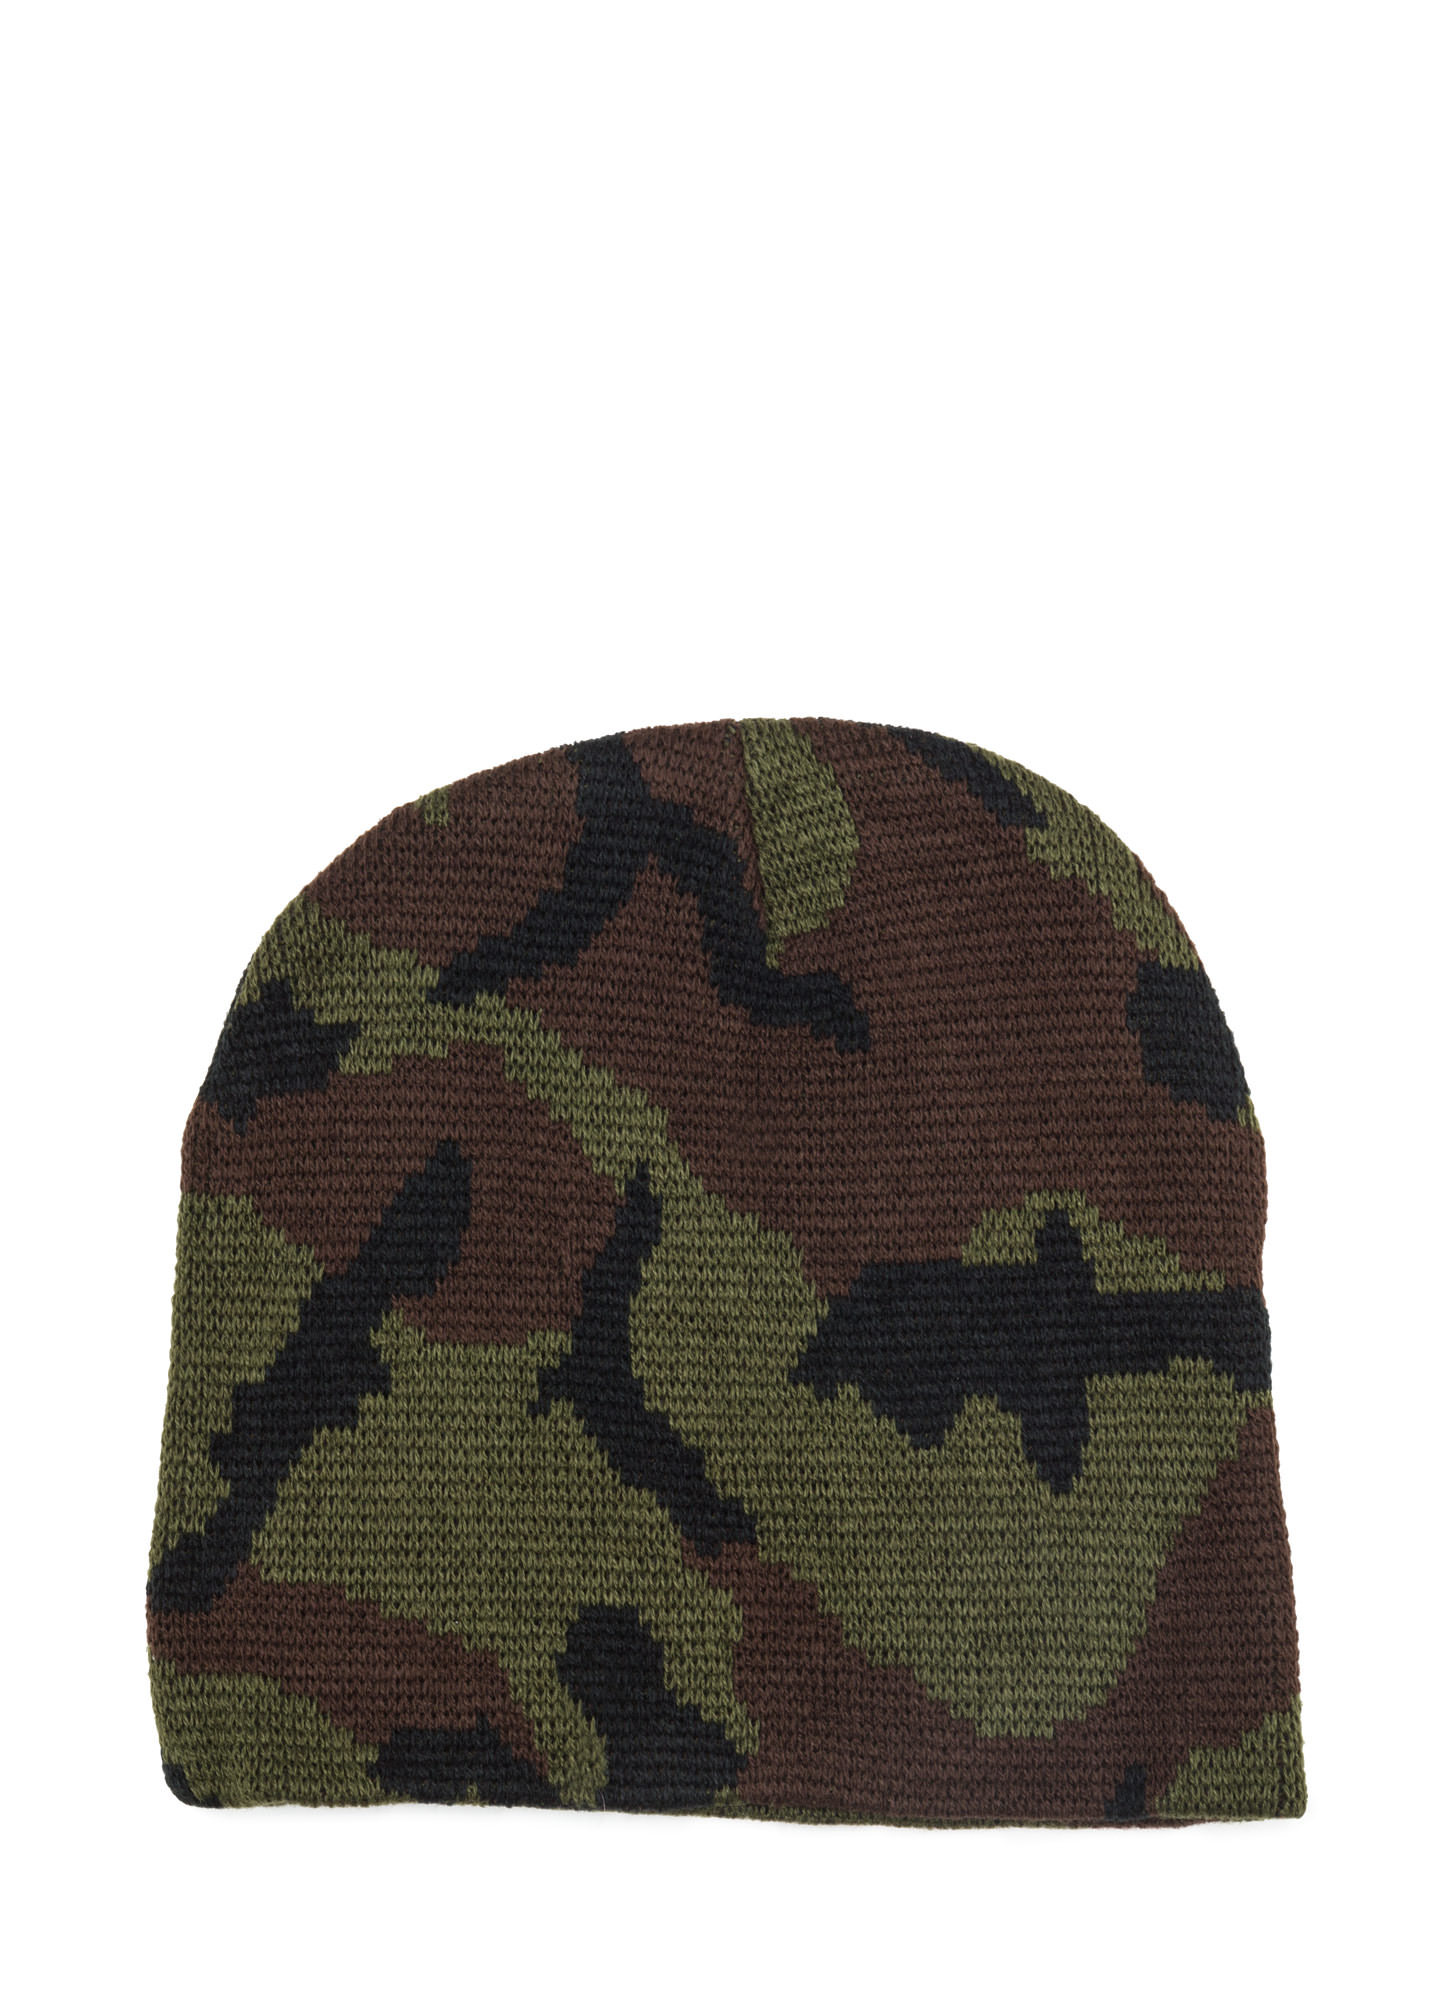 Camo Me Crazy Beanie OLIVEBROWN